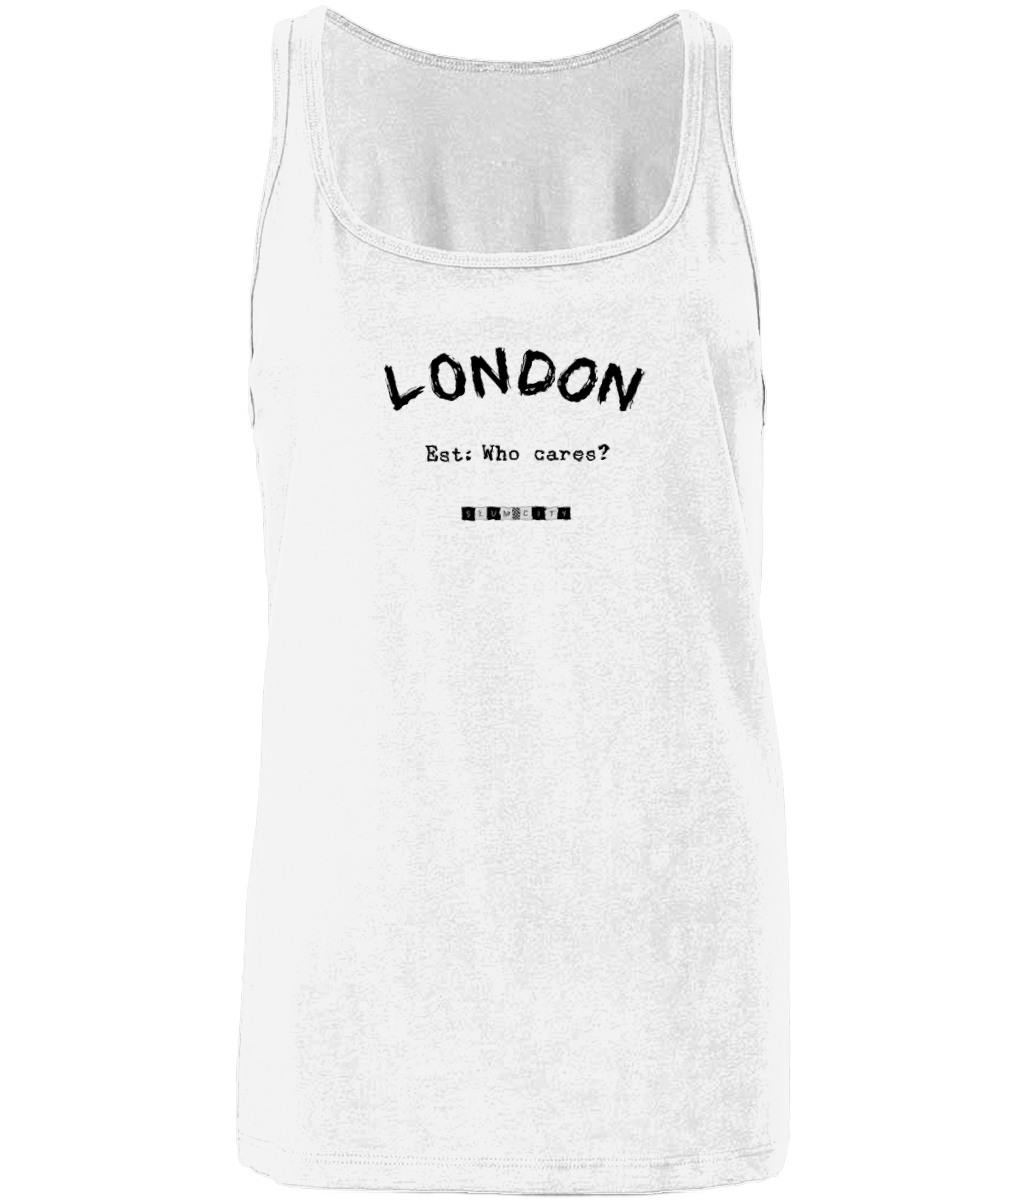 London Est: Who Cares? - women's tank top